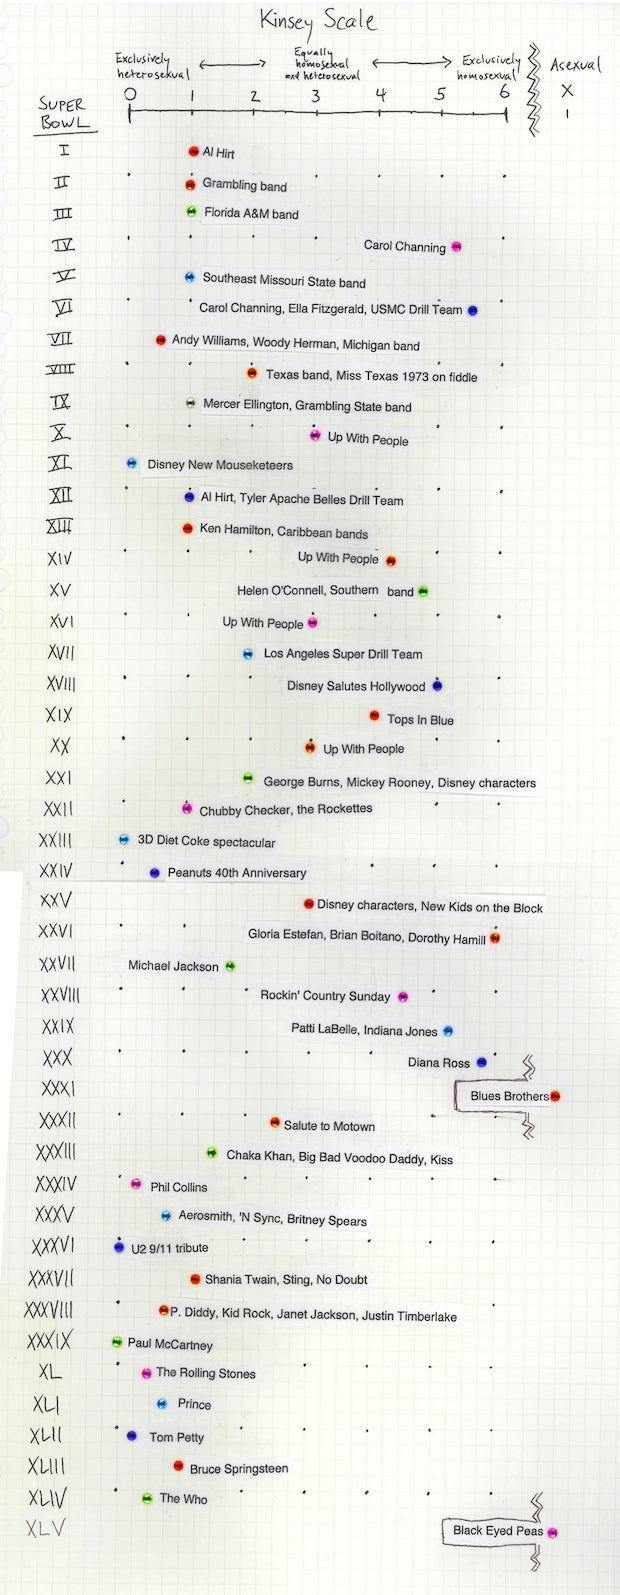 Homemade Infographic: What Were The Gayest (And Straightest) Super Bowl Halftime Shows?